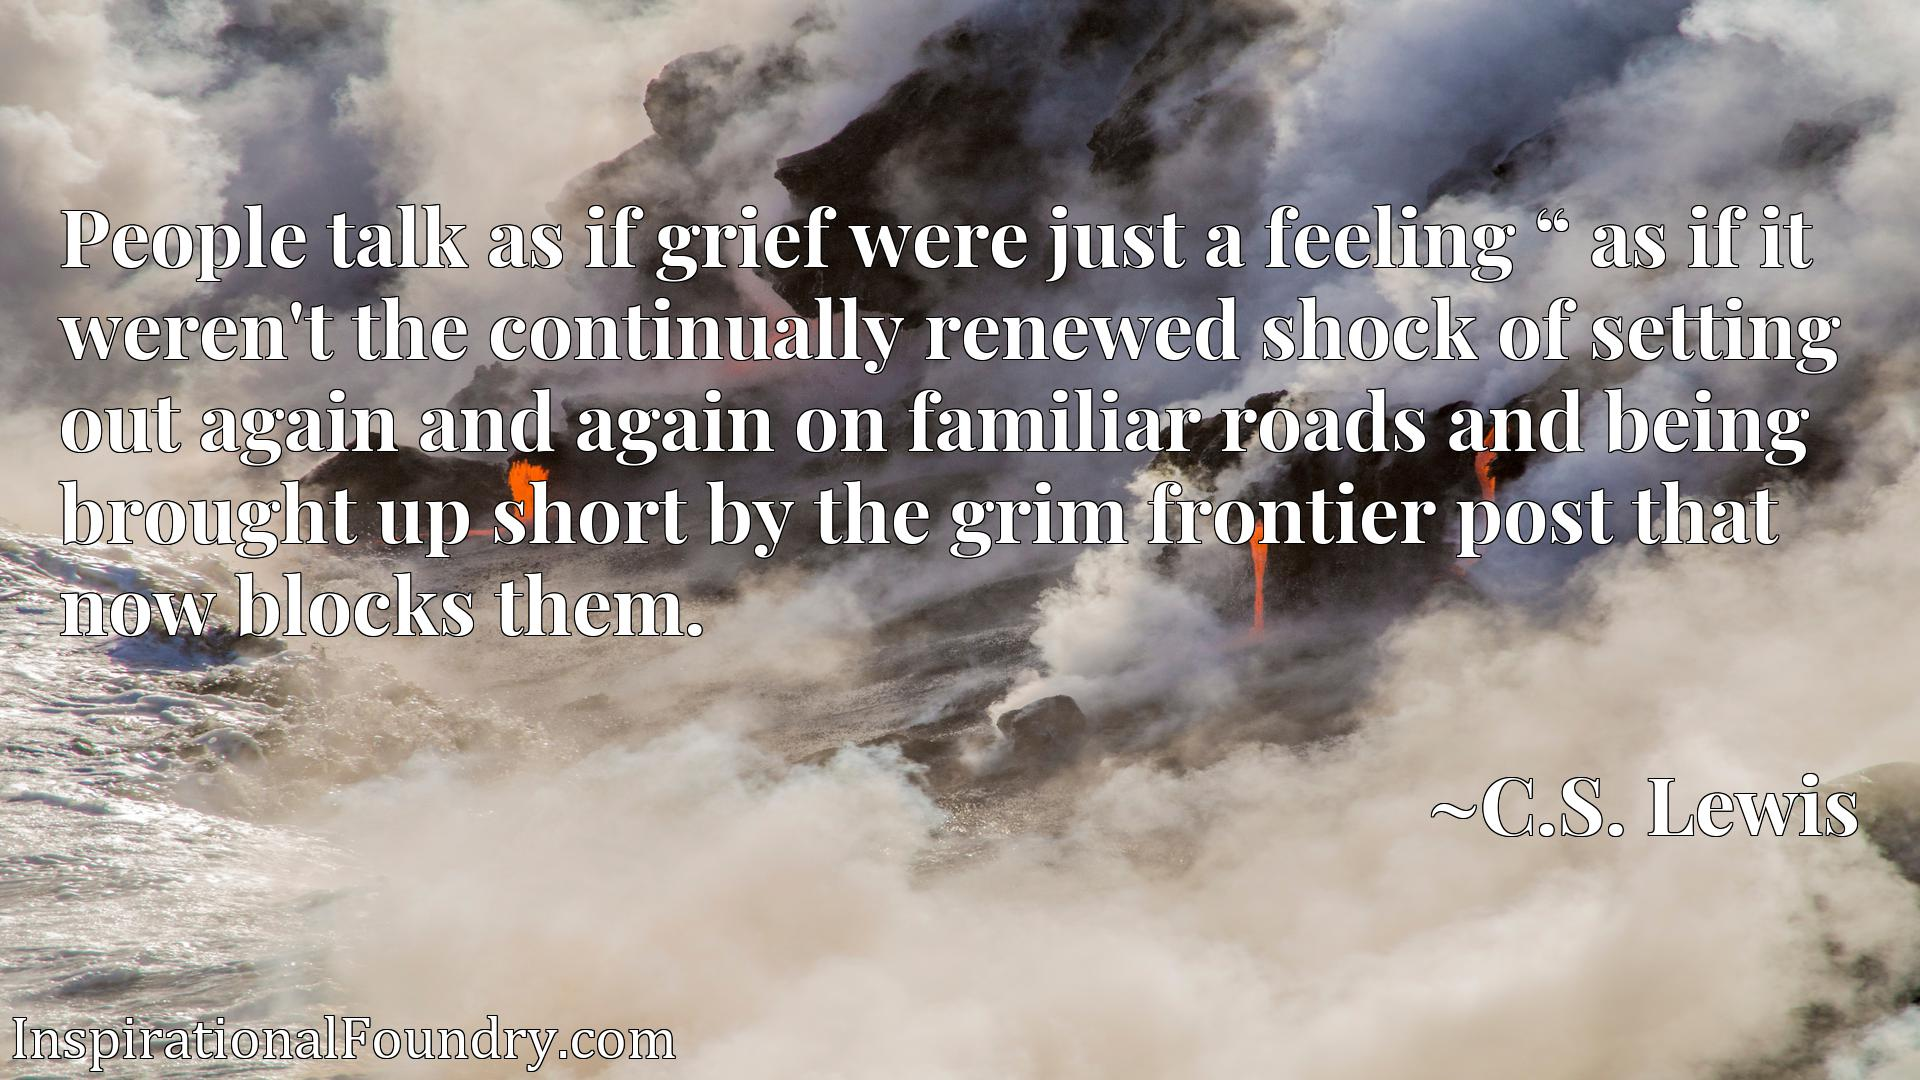 "People talk as if grief were just a feeling aEUR"" as if it weren't the continually renewed shock of setting out again and again on familiar roads and being brought up short by the grim frontier post that now blocks them."